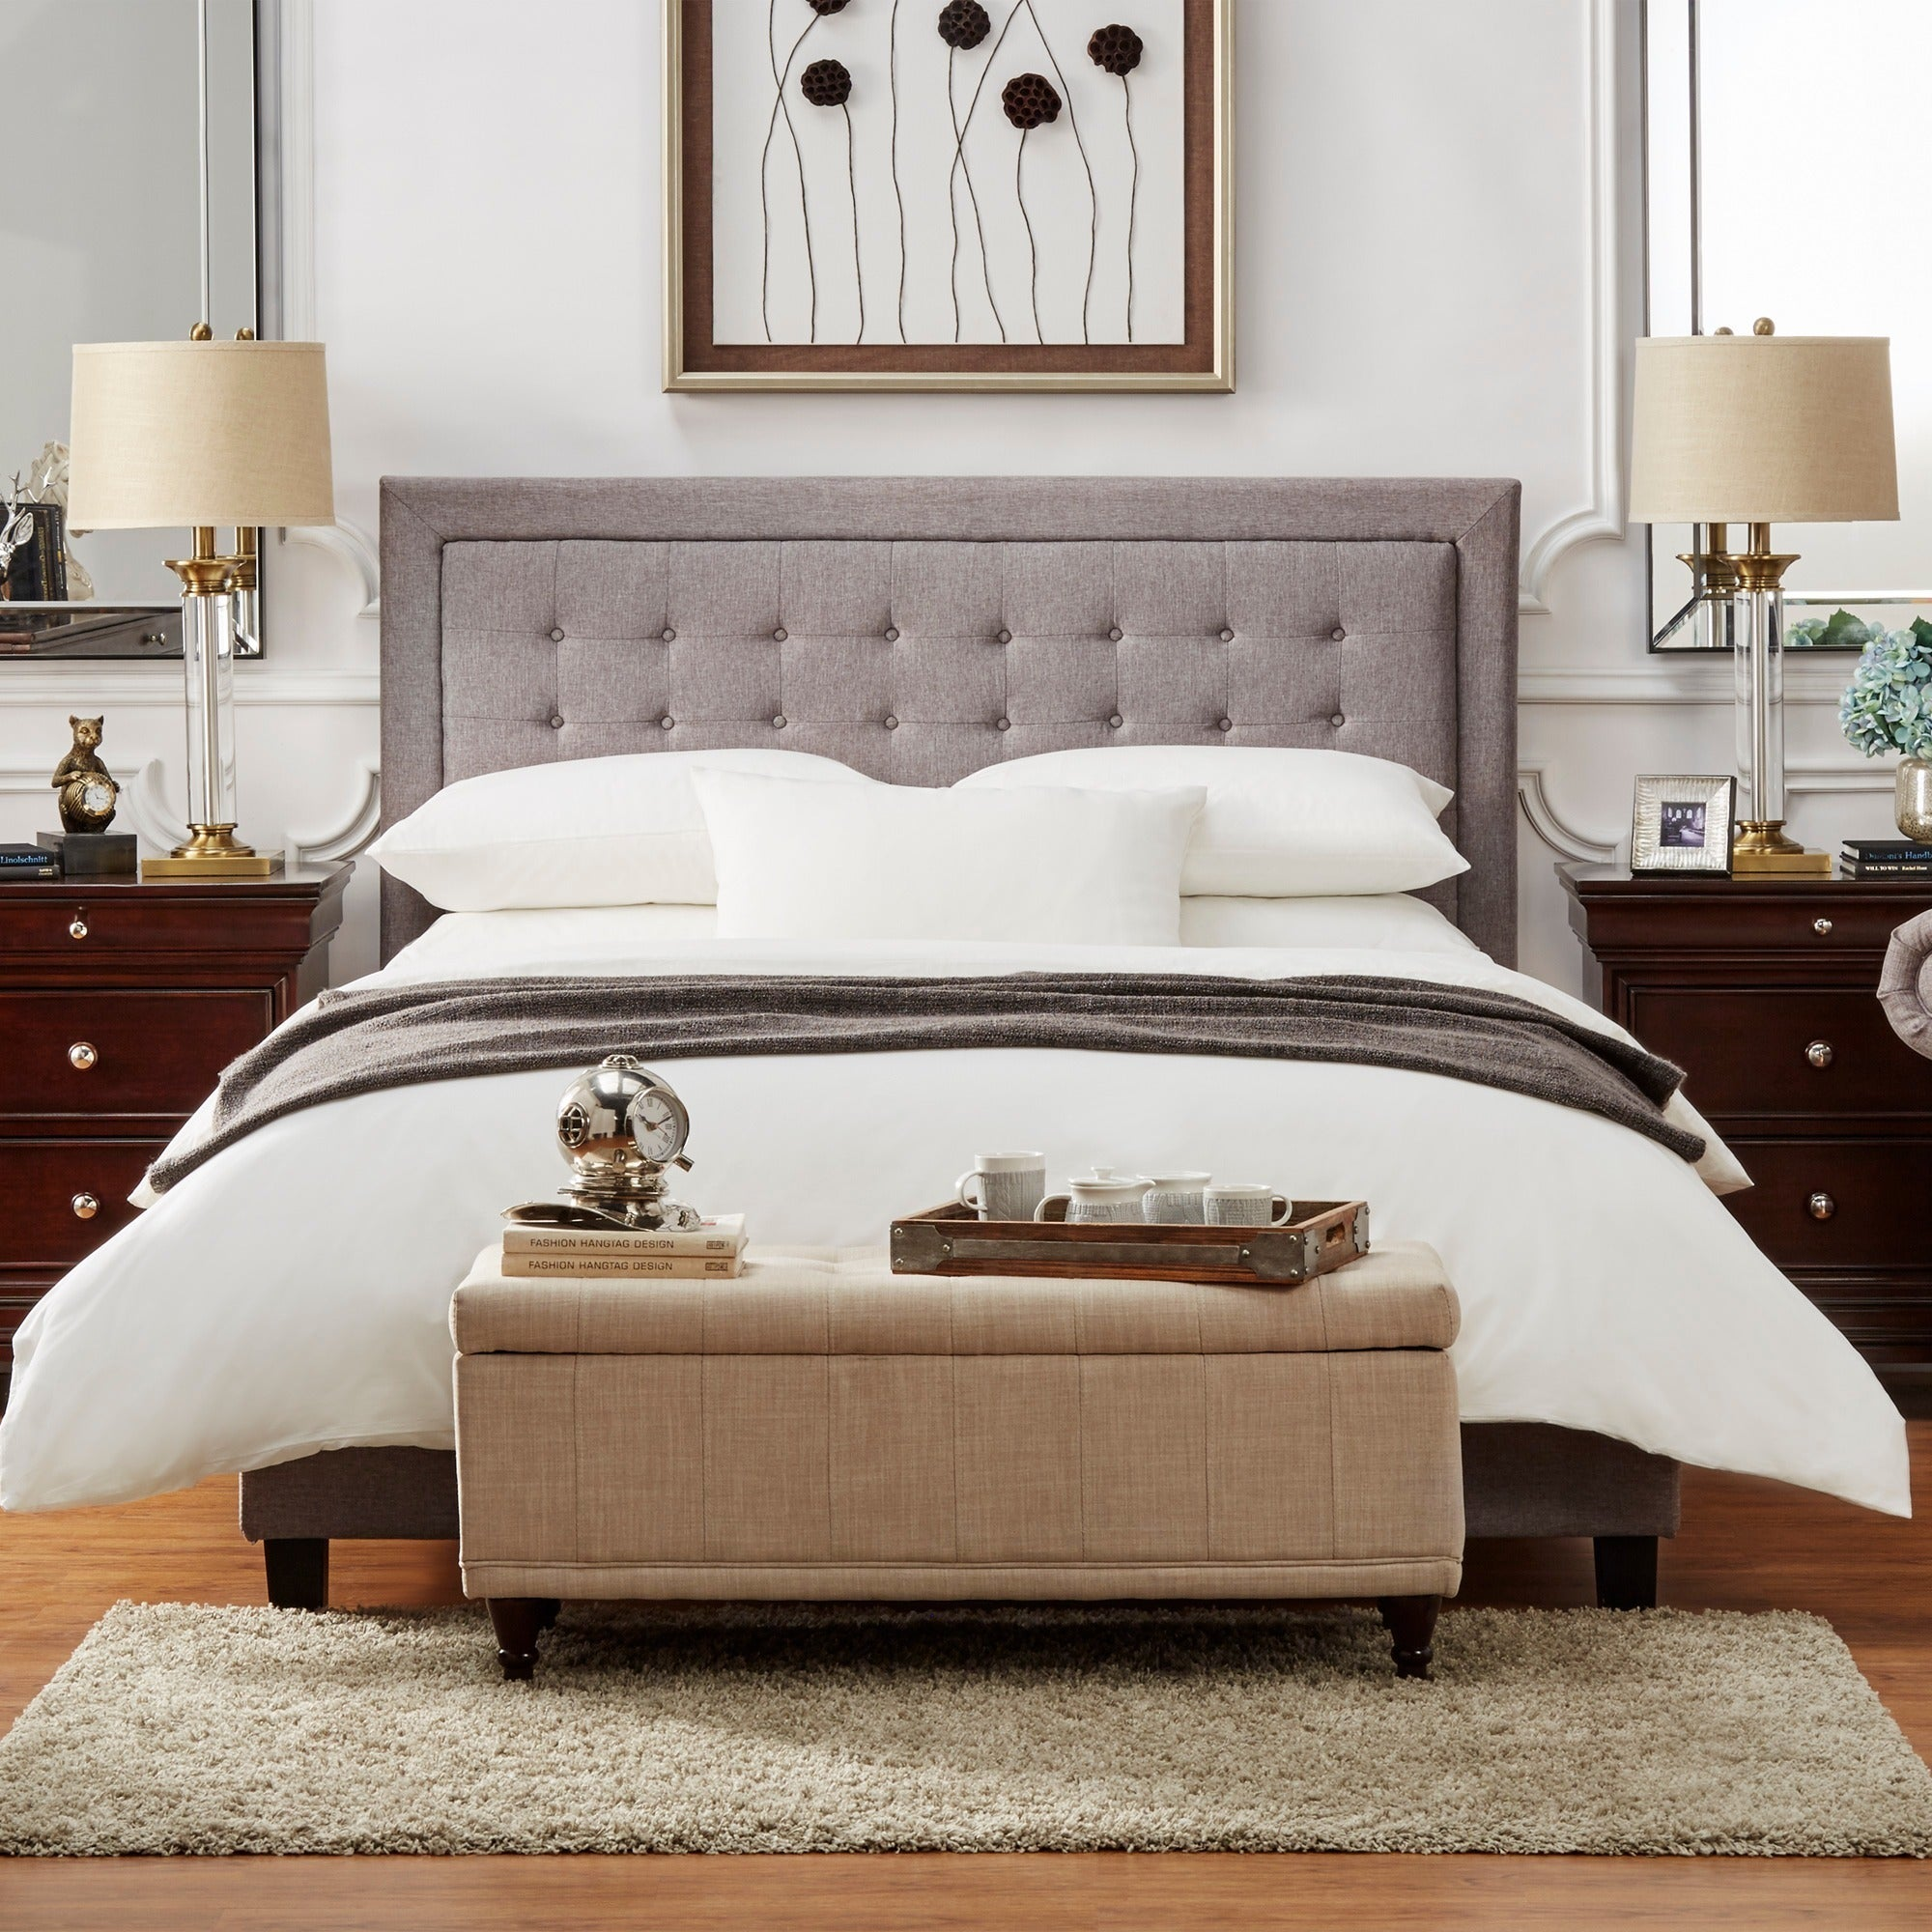 Bellevista Square Button Tufted Upholstered Platform Bed By INSPIRE Q Bold    Free Shipping Today   Overstock   16577707